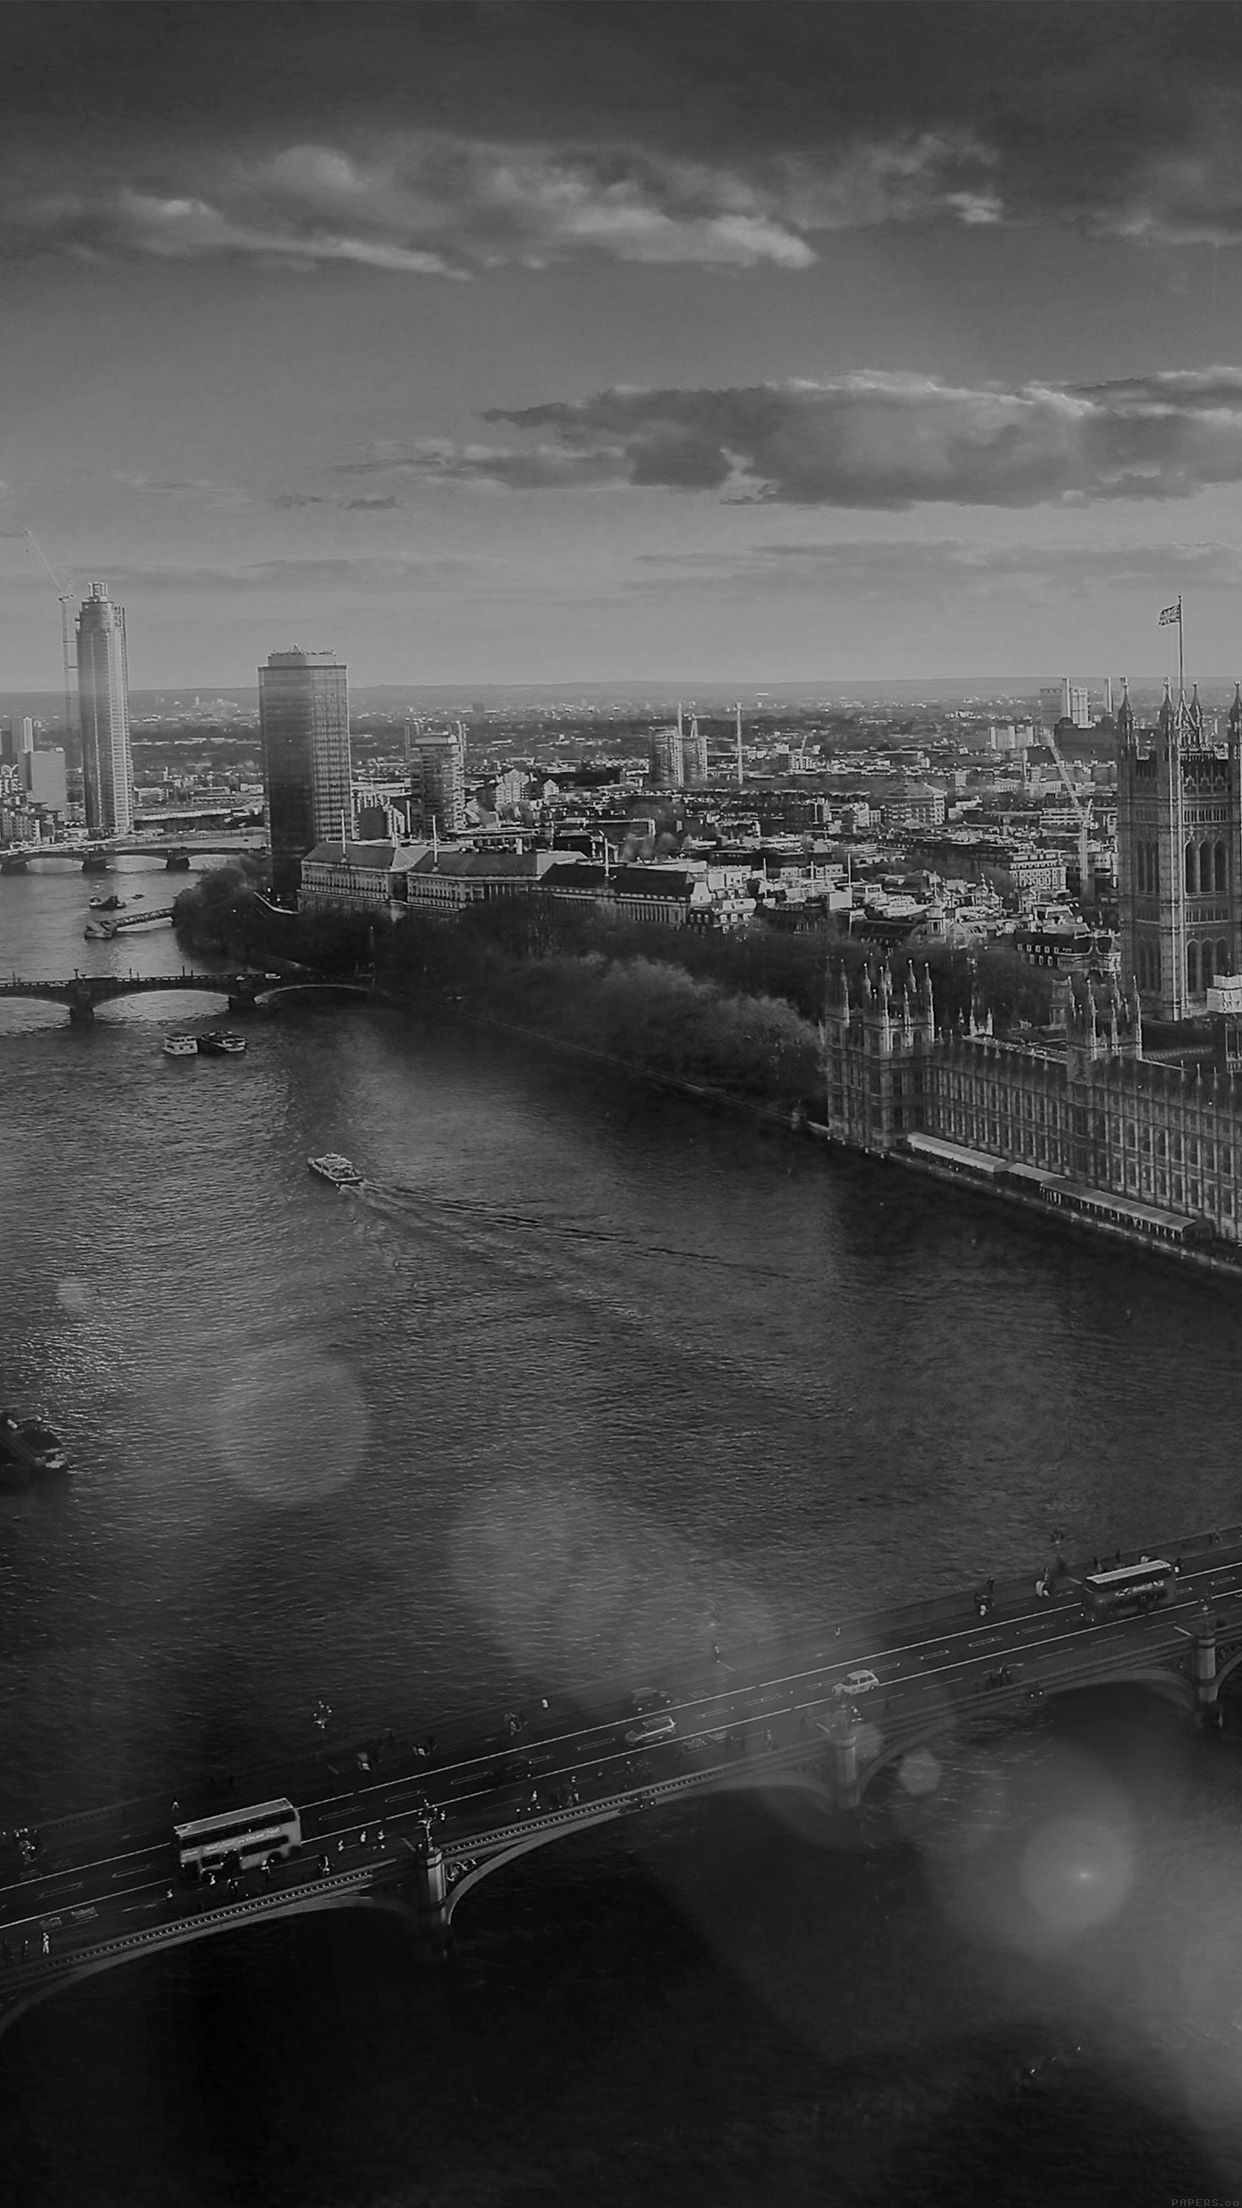 england london dark bw skyview city flare big ben nature android wallpaper android hd wallpapers